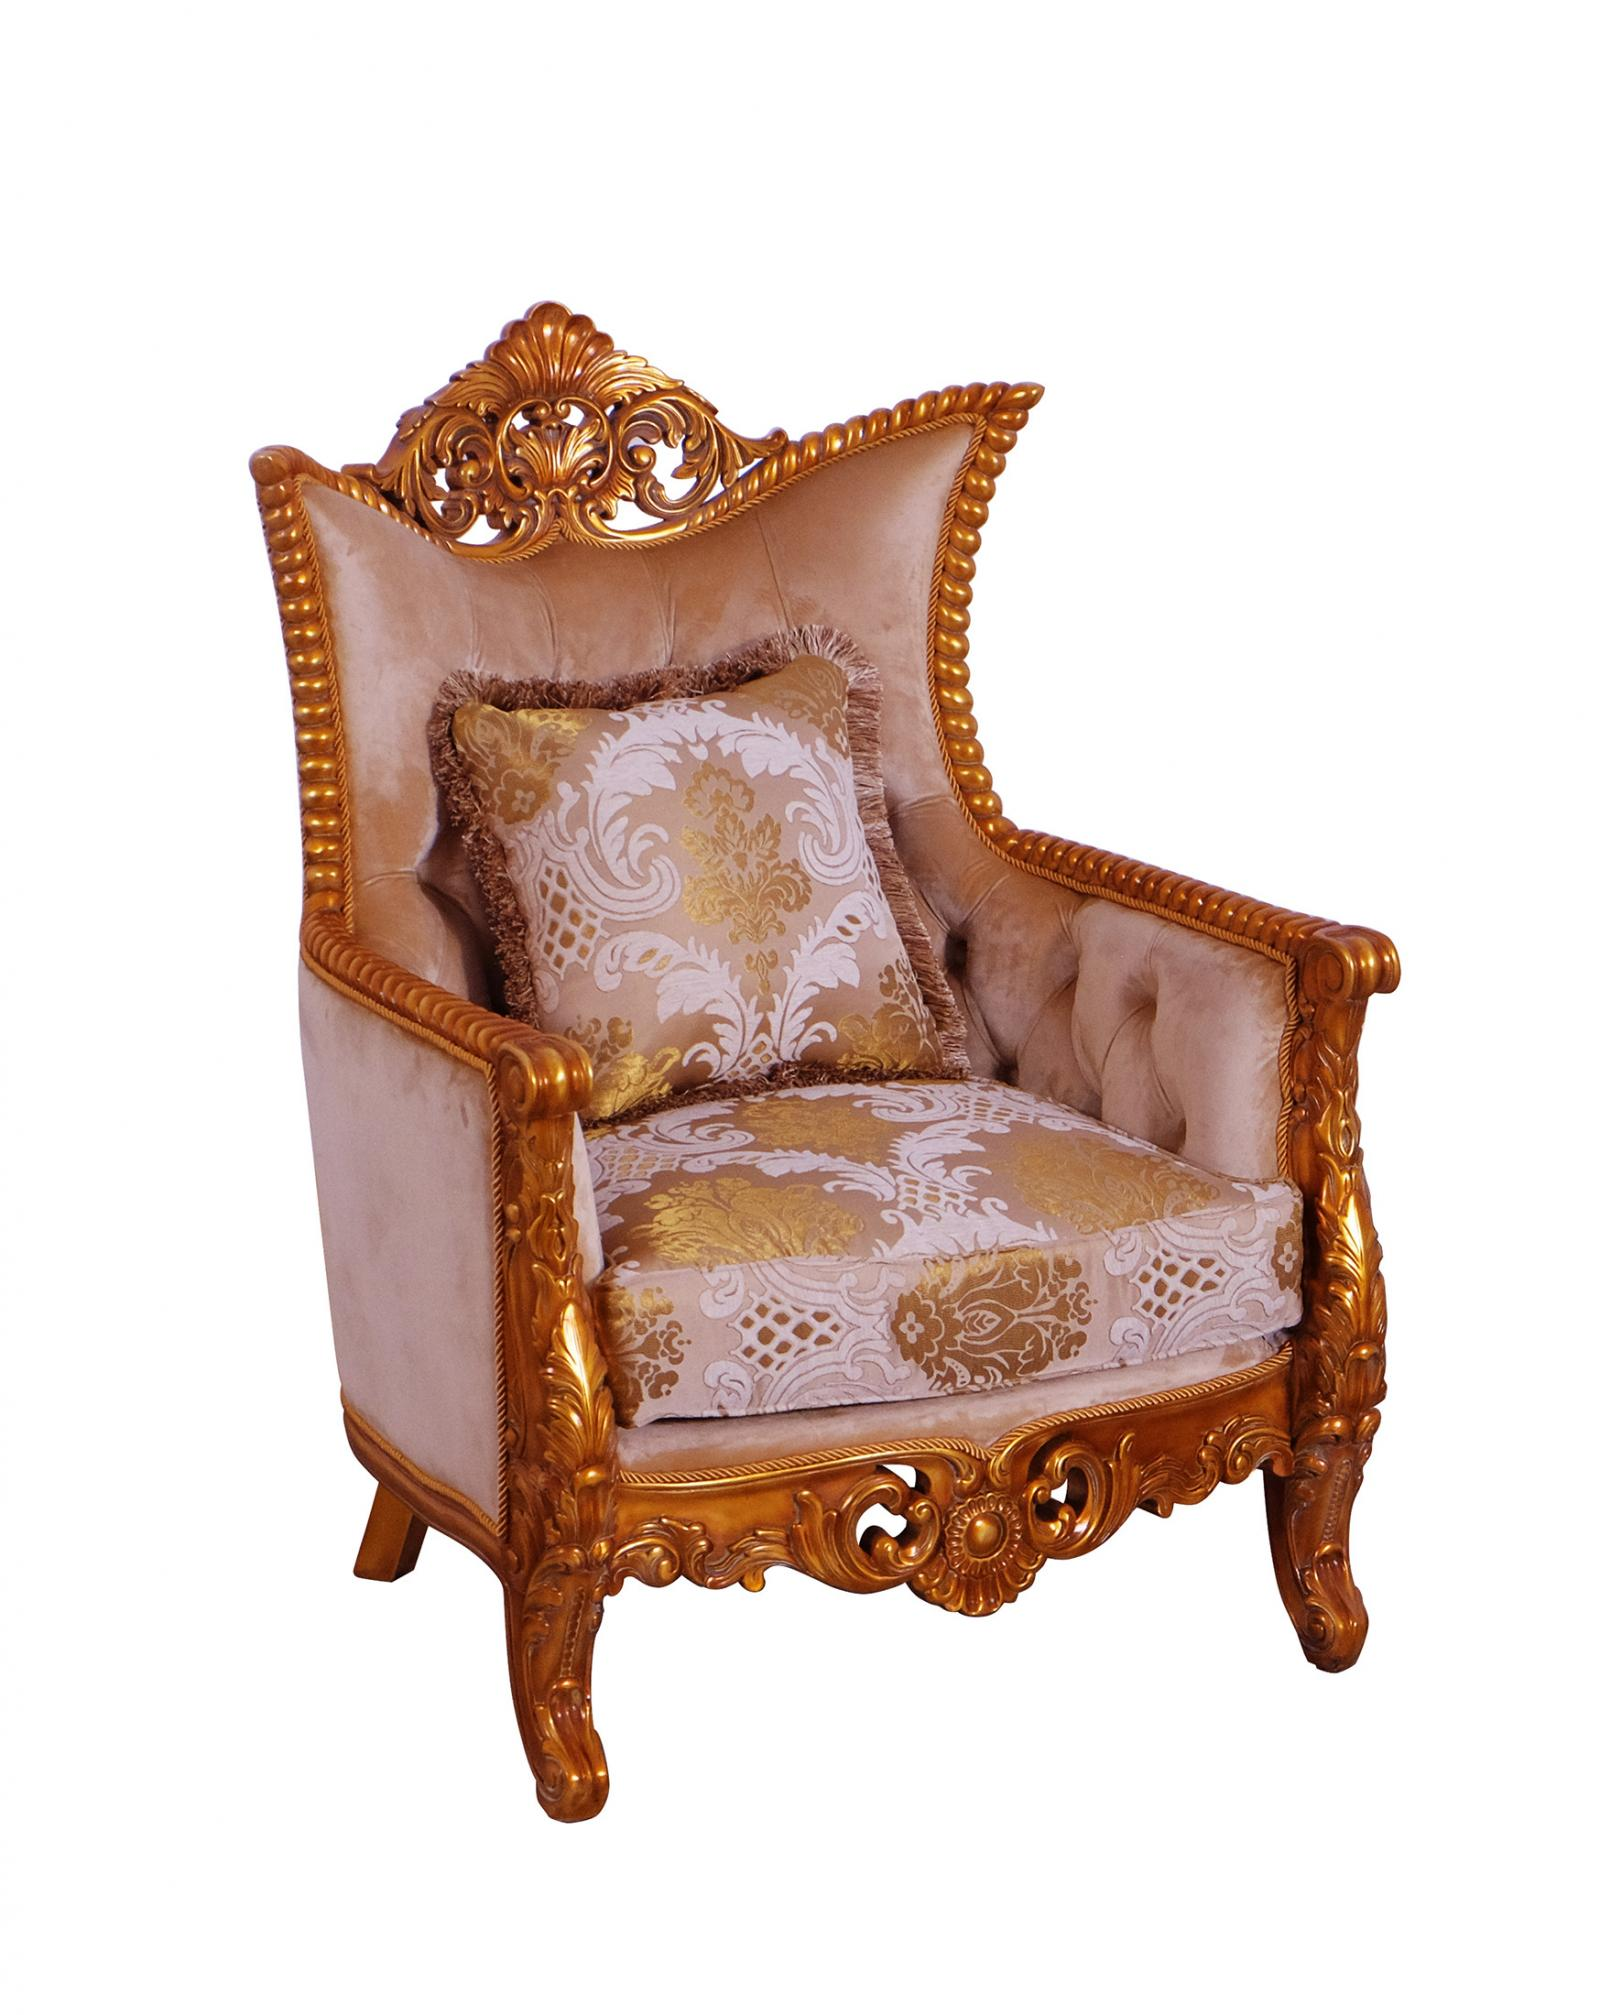 Classic  Traditional Gold  Sand Wood  Solid Hardwood and Fabric Arm Chair EUROPEAN FURNITURE 31056-C